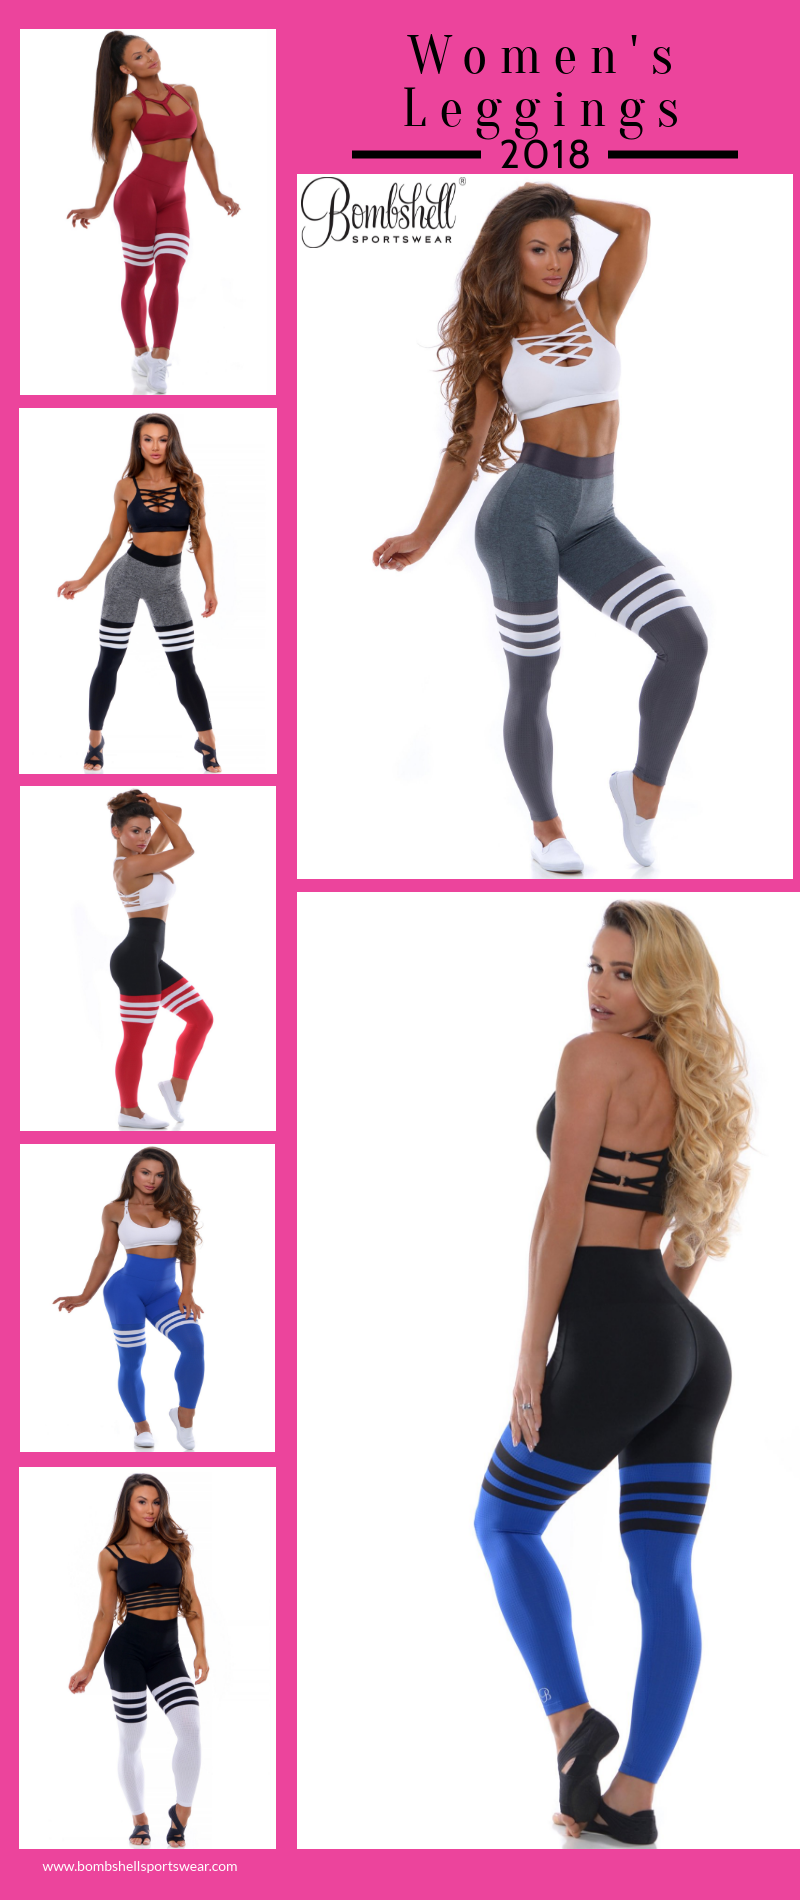 38fc16b955 Buy Womens Leggings online at best prices from Bombshell Sportswear's large  range of designs. Look fashionable with newly designed bombshell bottoms.